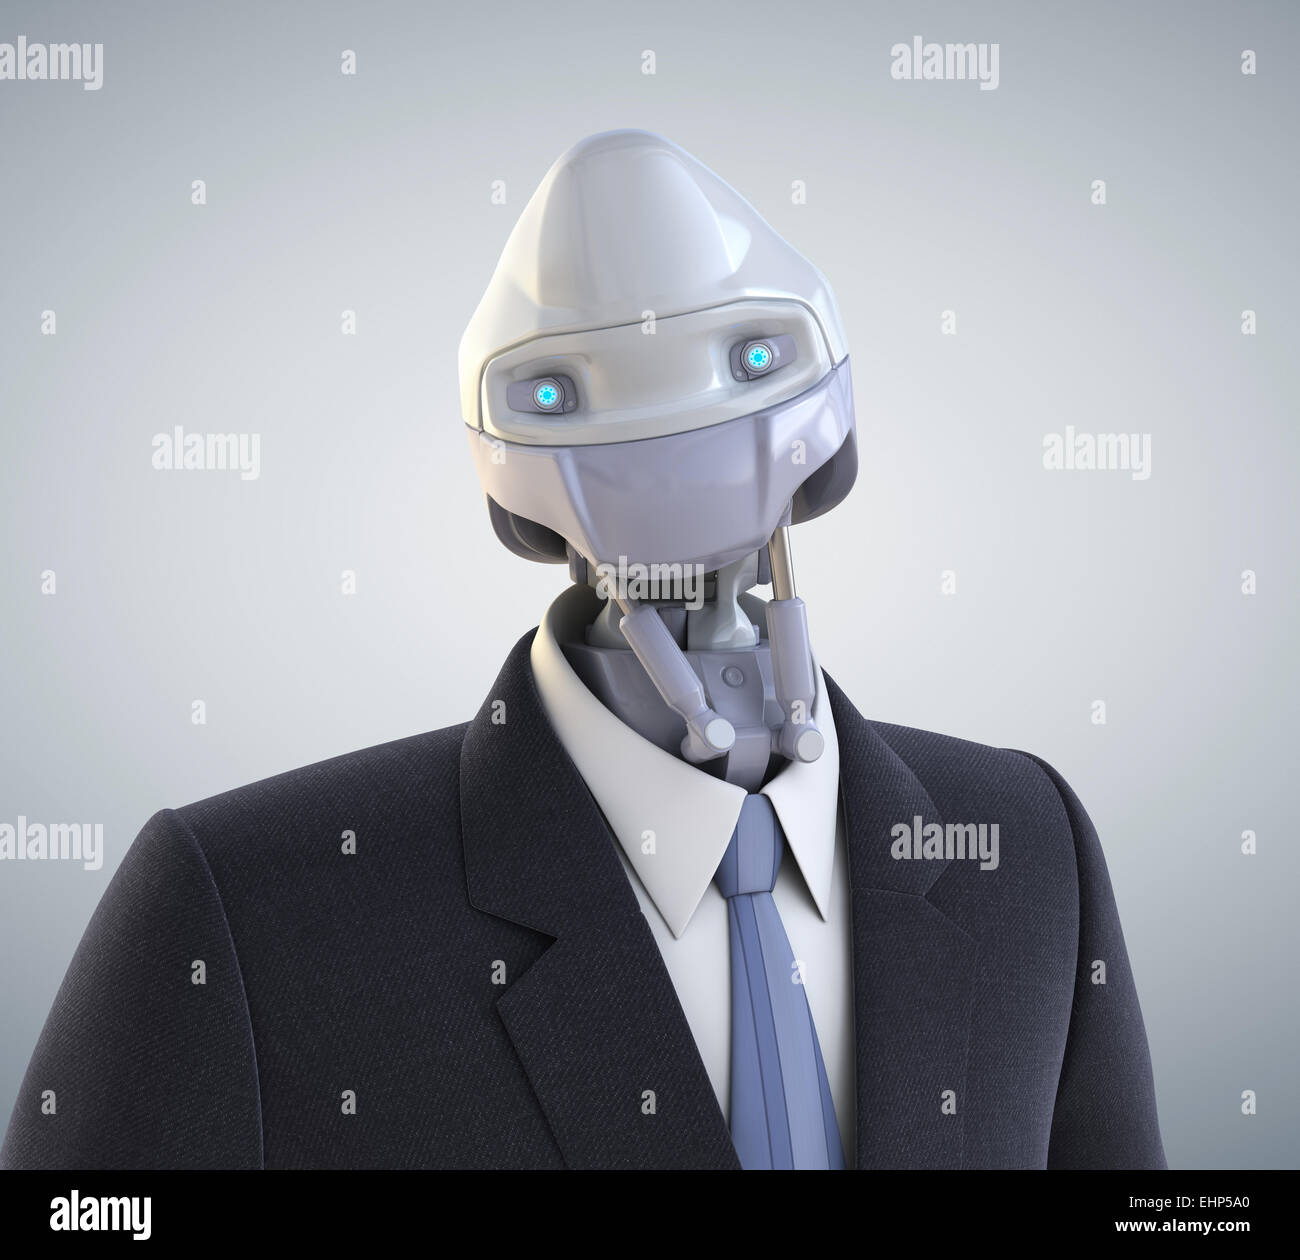 Robot vêtu d'un costume d'affaires. Chemin de détourage inclus Photo Stock